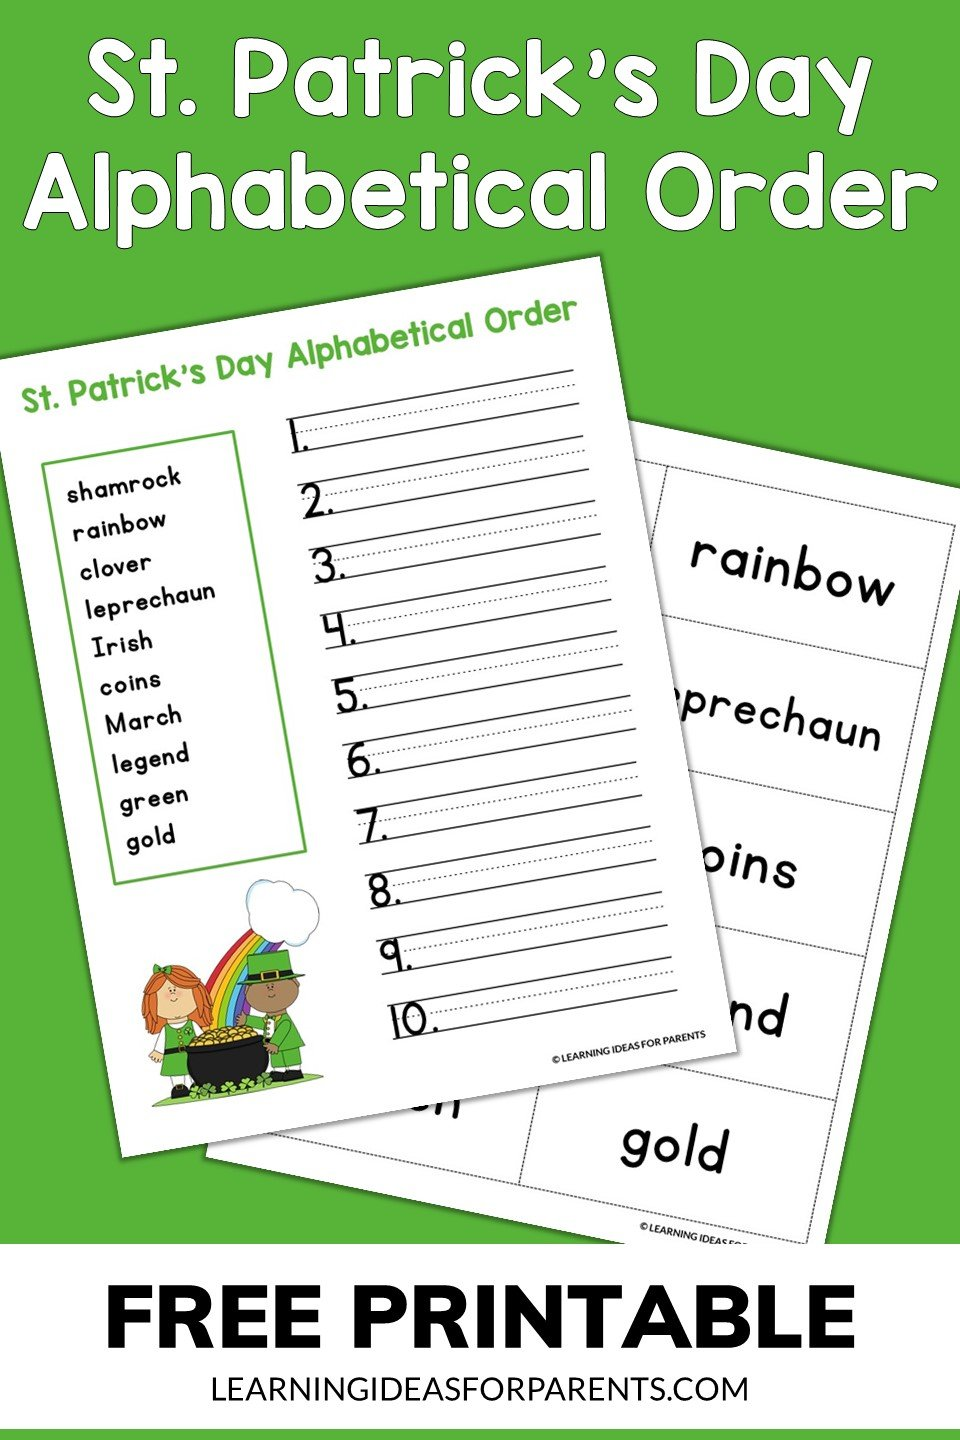 Free printable St. Patrick's Day alphabetical order activity